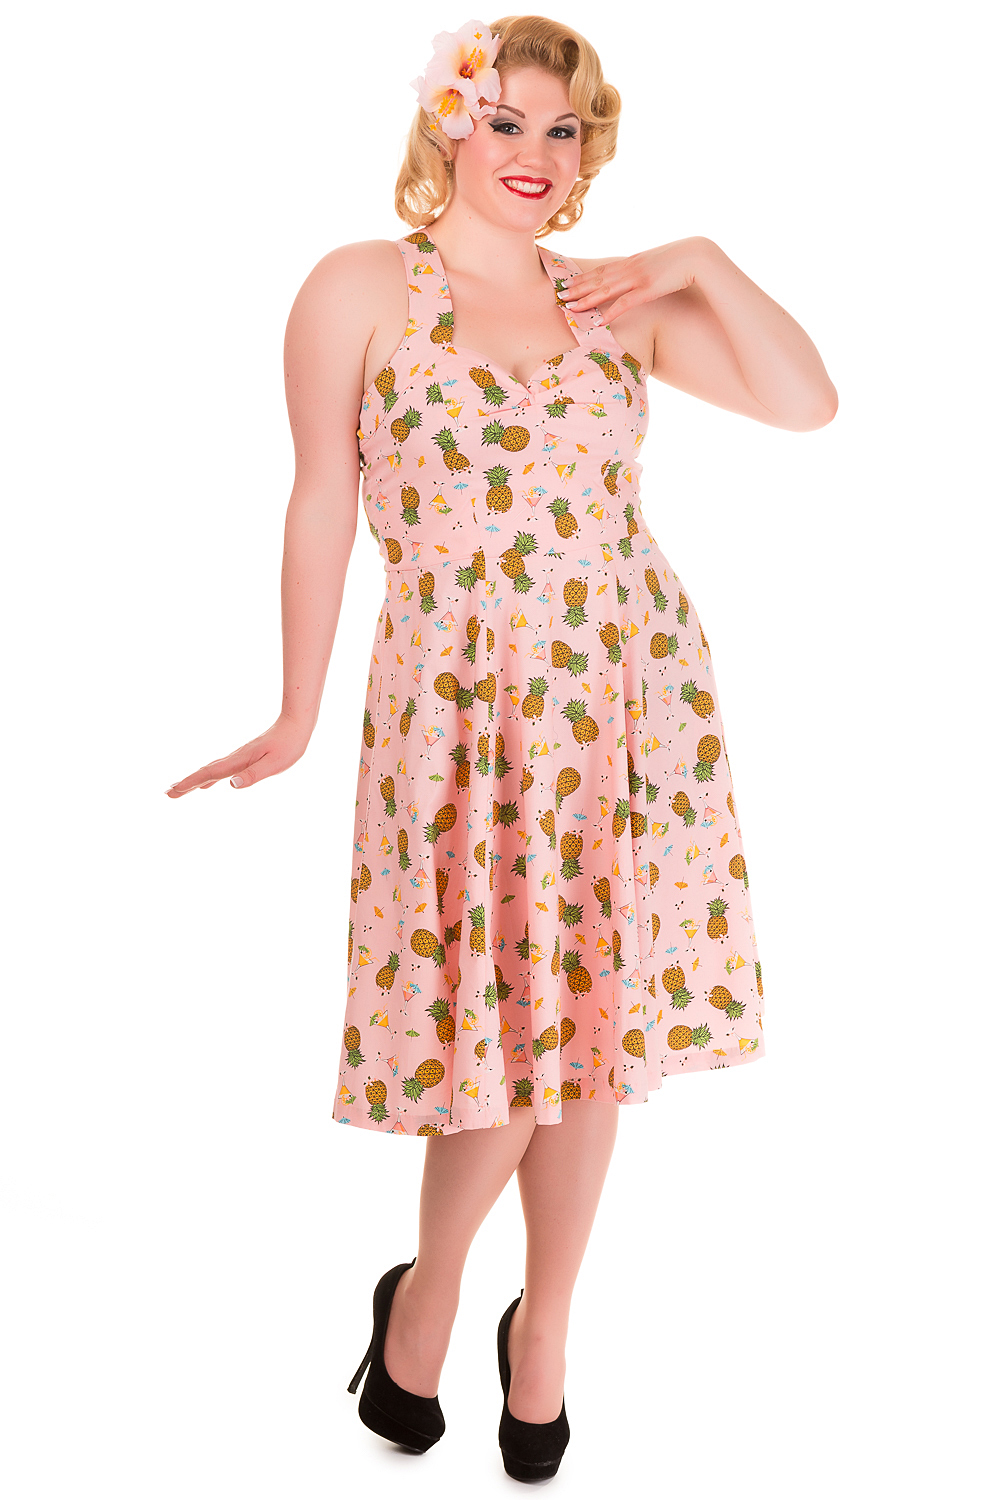 Banned This Love Pineapple Plus Size Dress